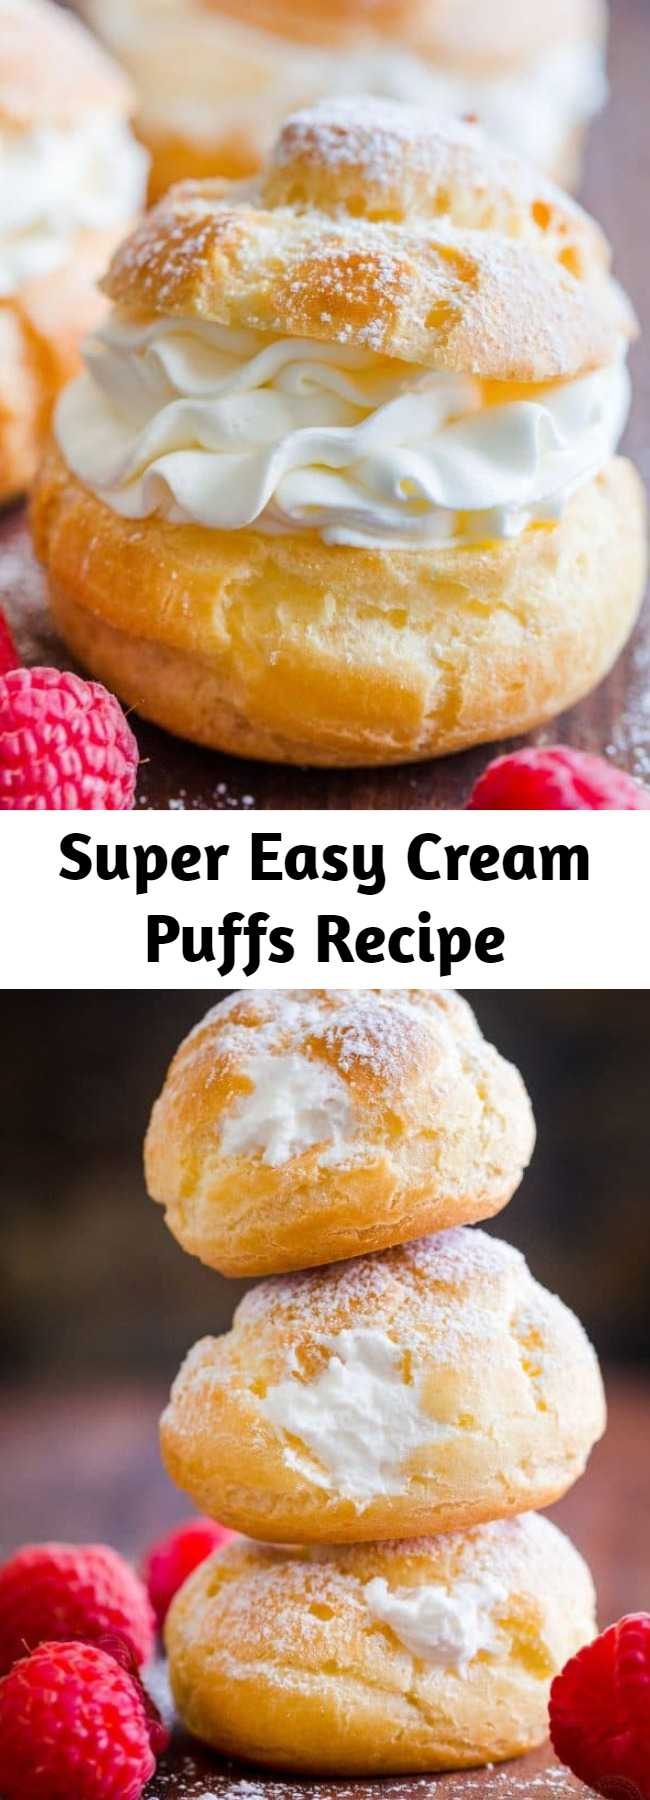 Super Easy Cream Puffs Recipe - Homemade Cream Puffs filled with sweet cream and raspberries. Learn how to make a bakery quality, buttery Choux pastry dough. #creampuffs #creampuffrecipe #chouxpastry #chouxpaste #dessert #pastry #Frenchpastry #French